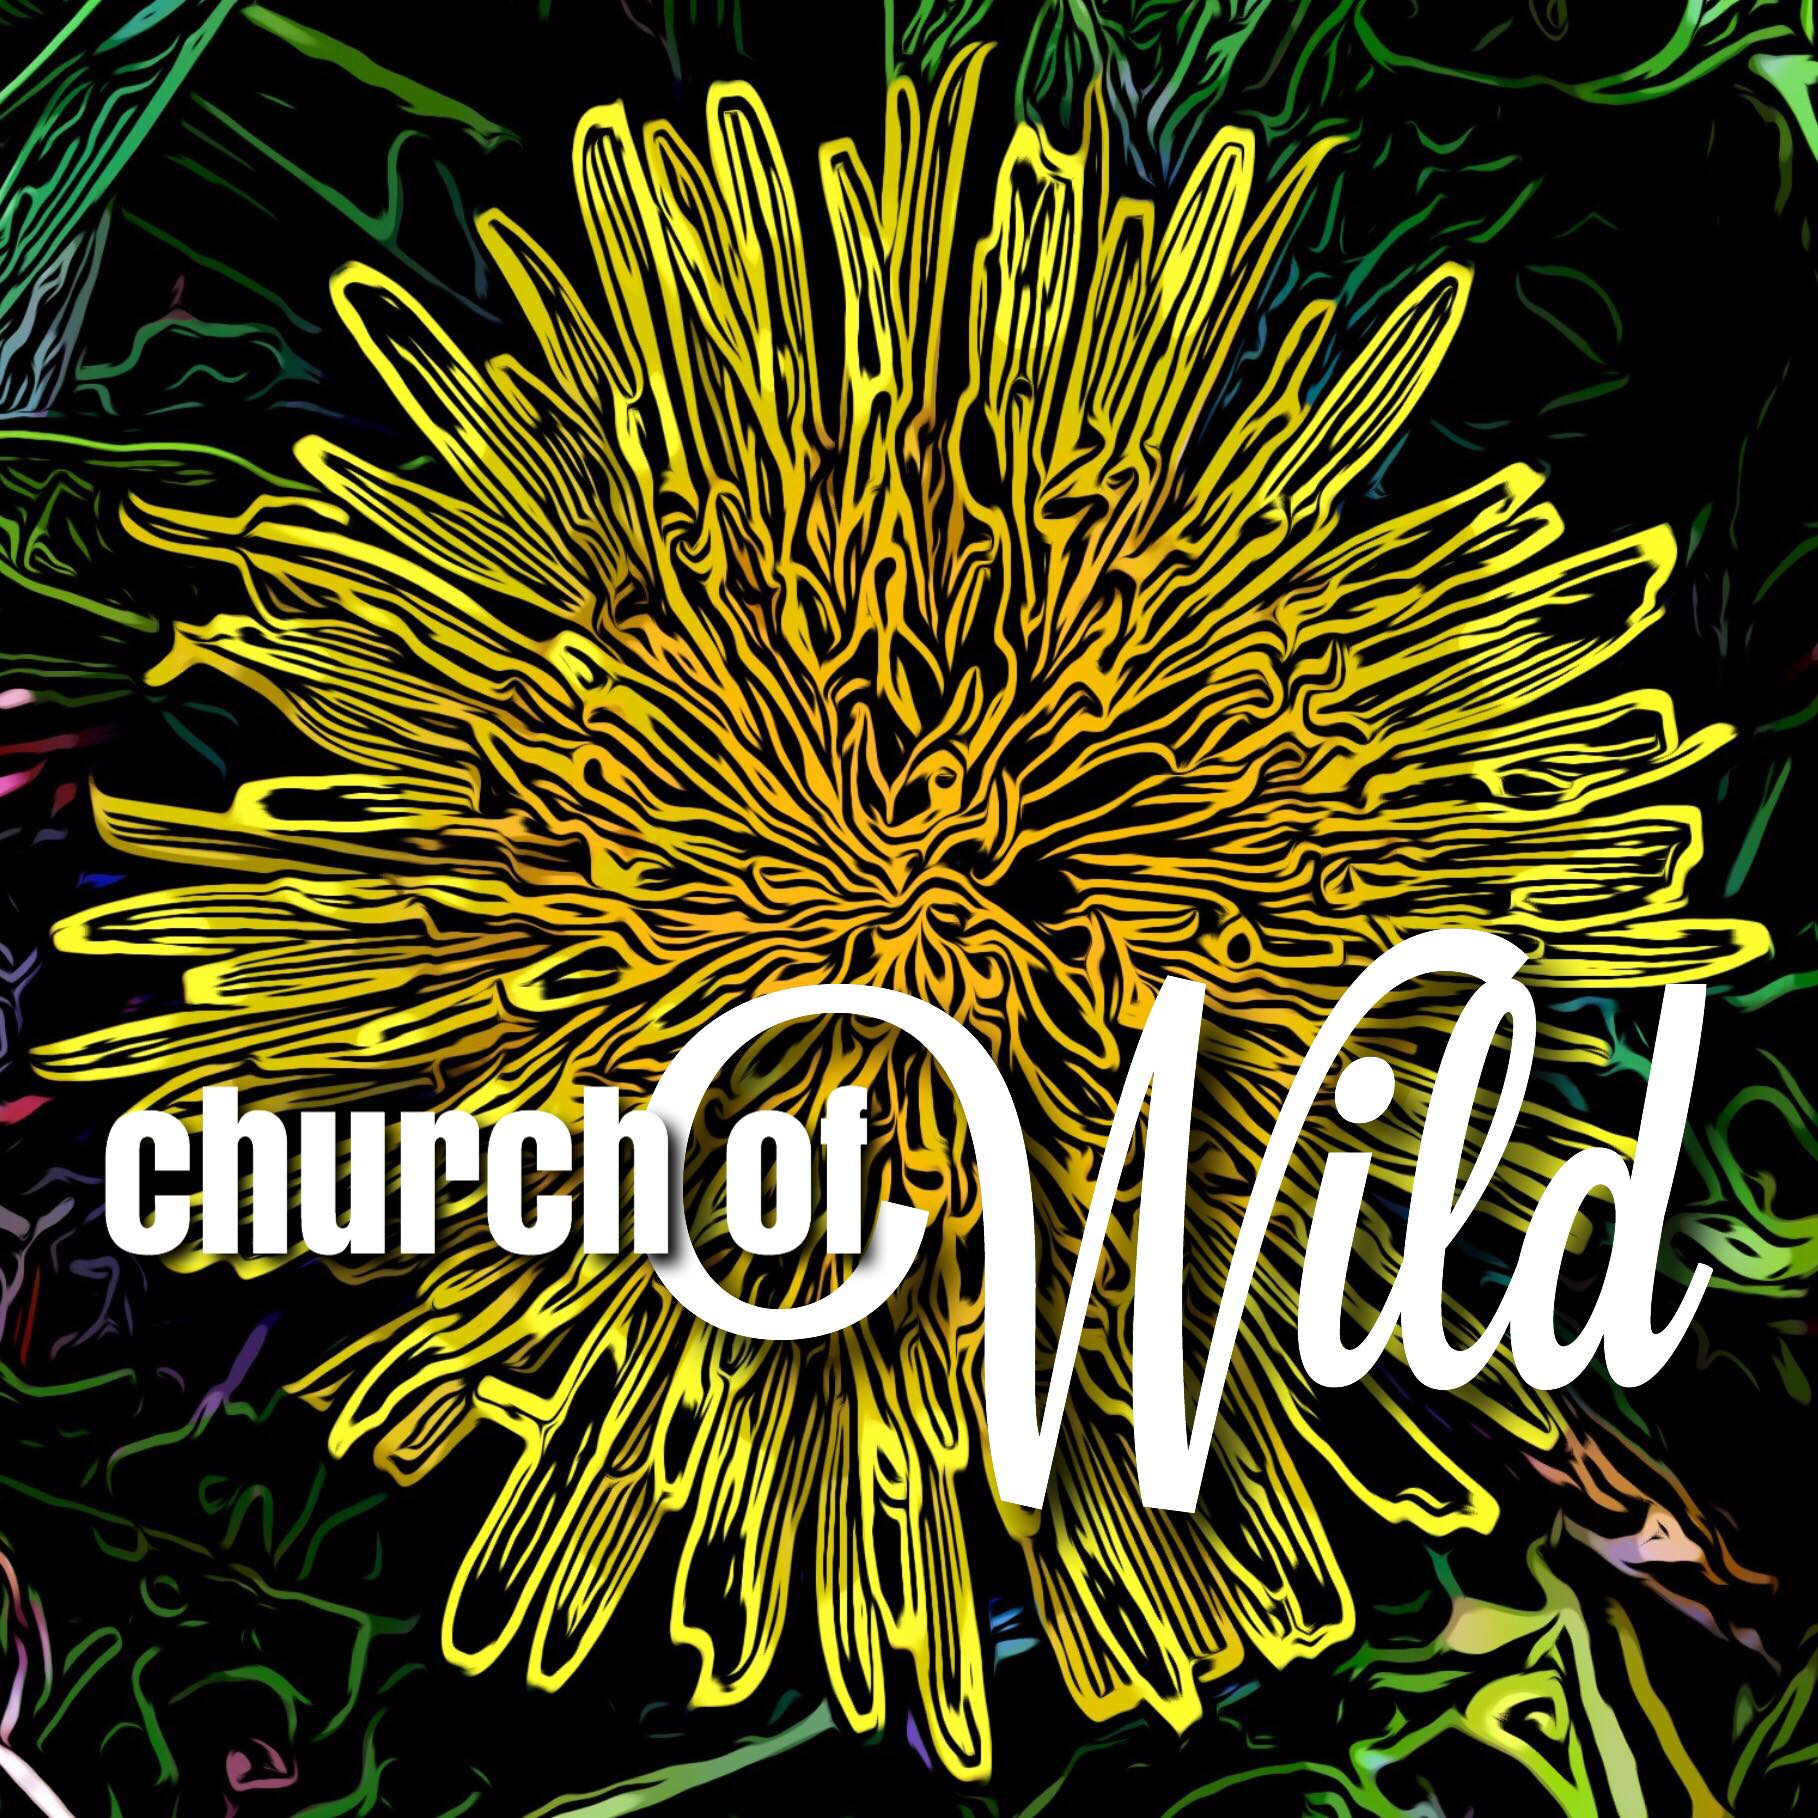 Stylized dandelion on a black background with the Church of Wild in text